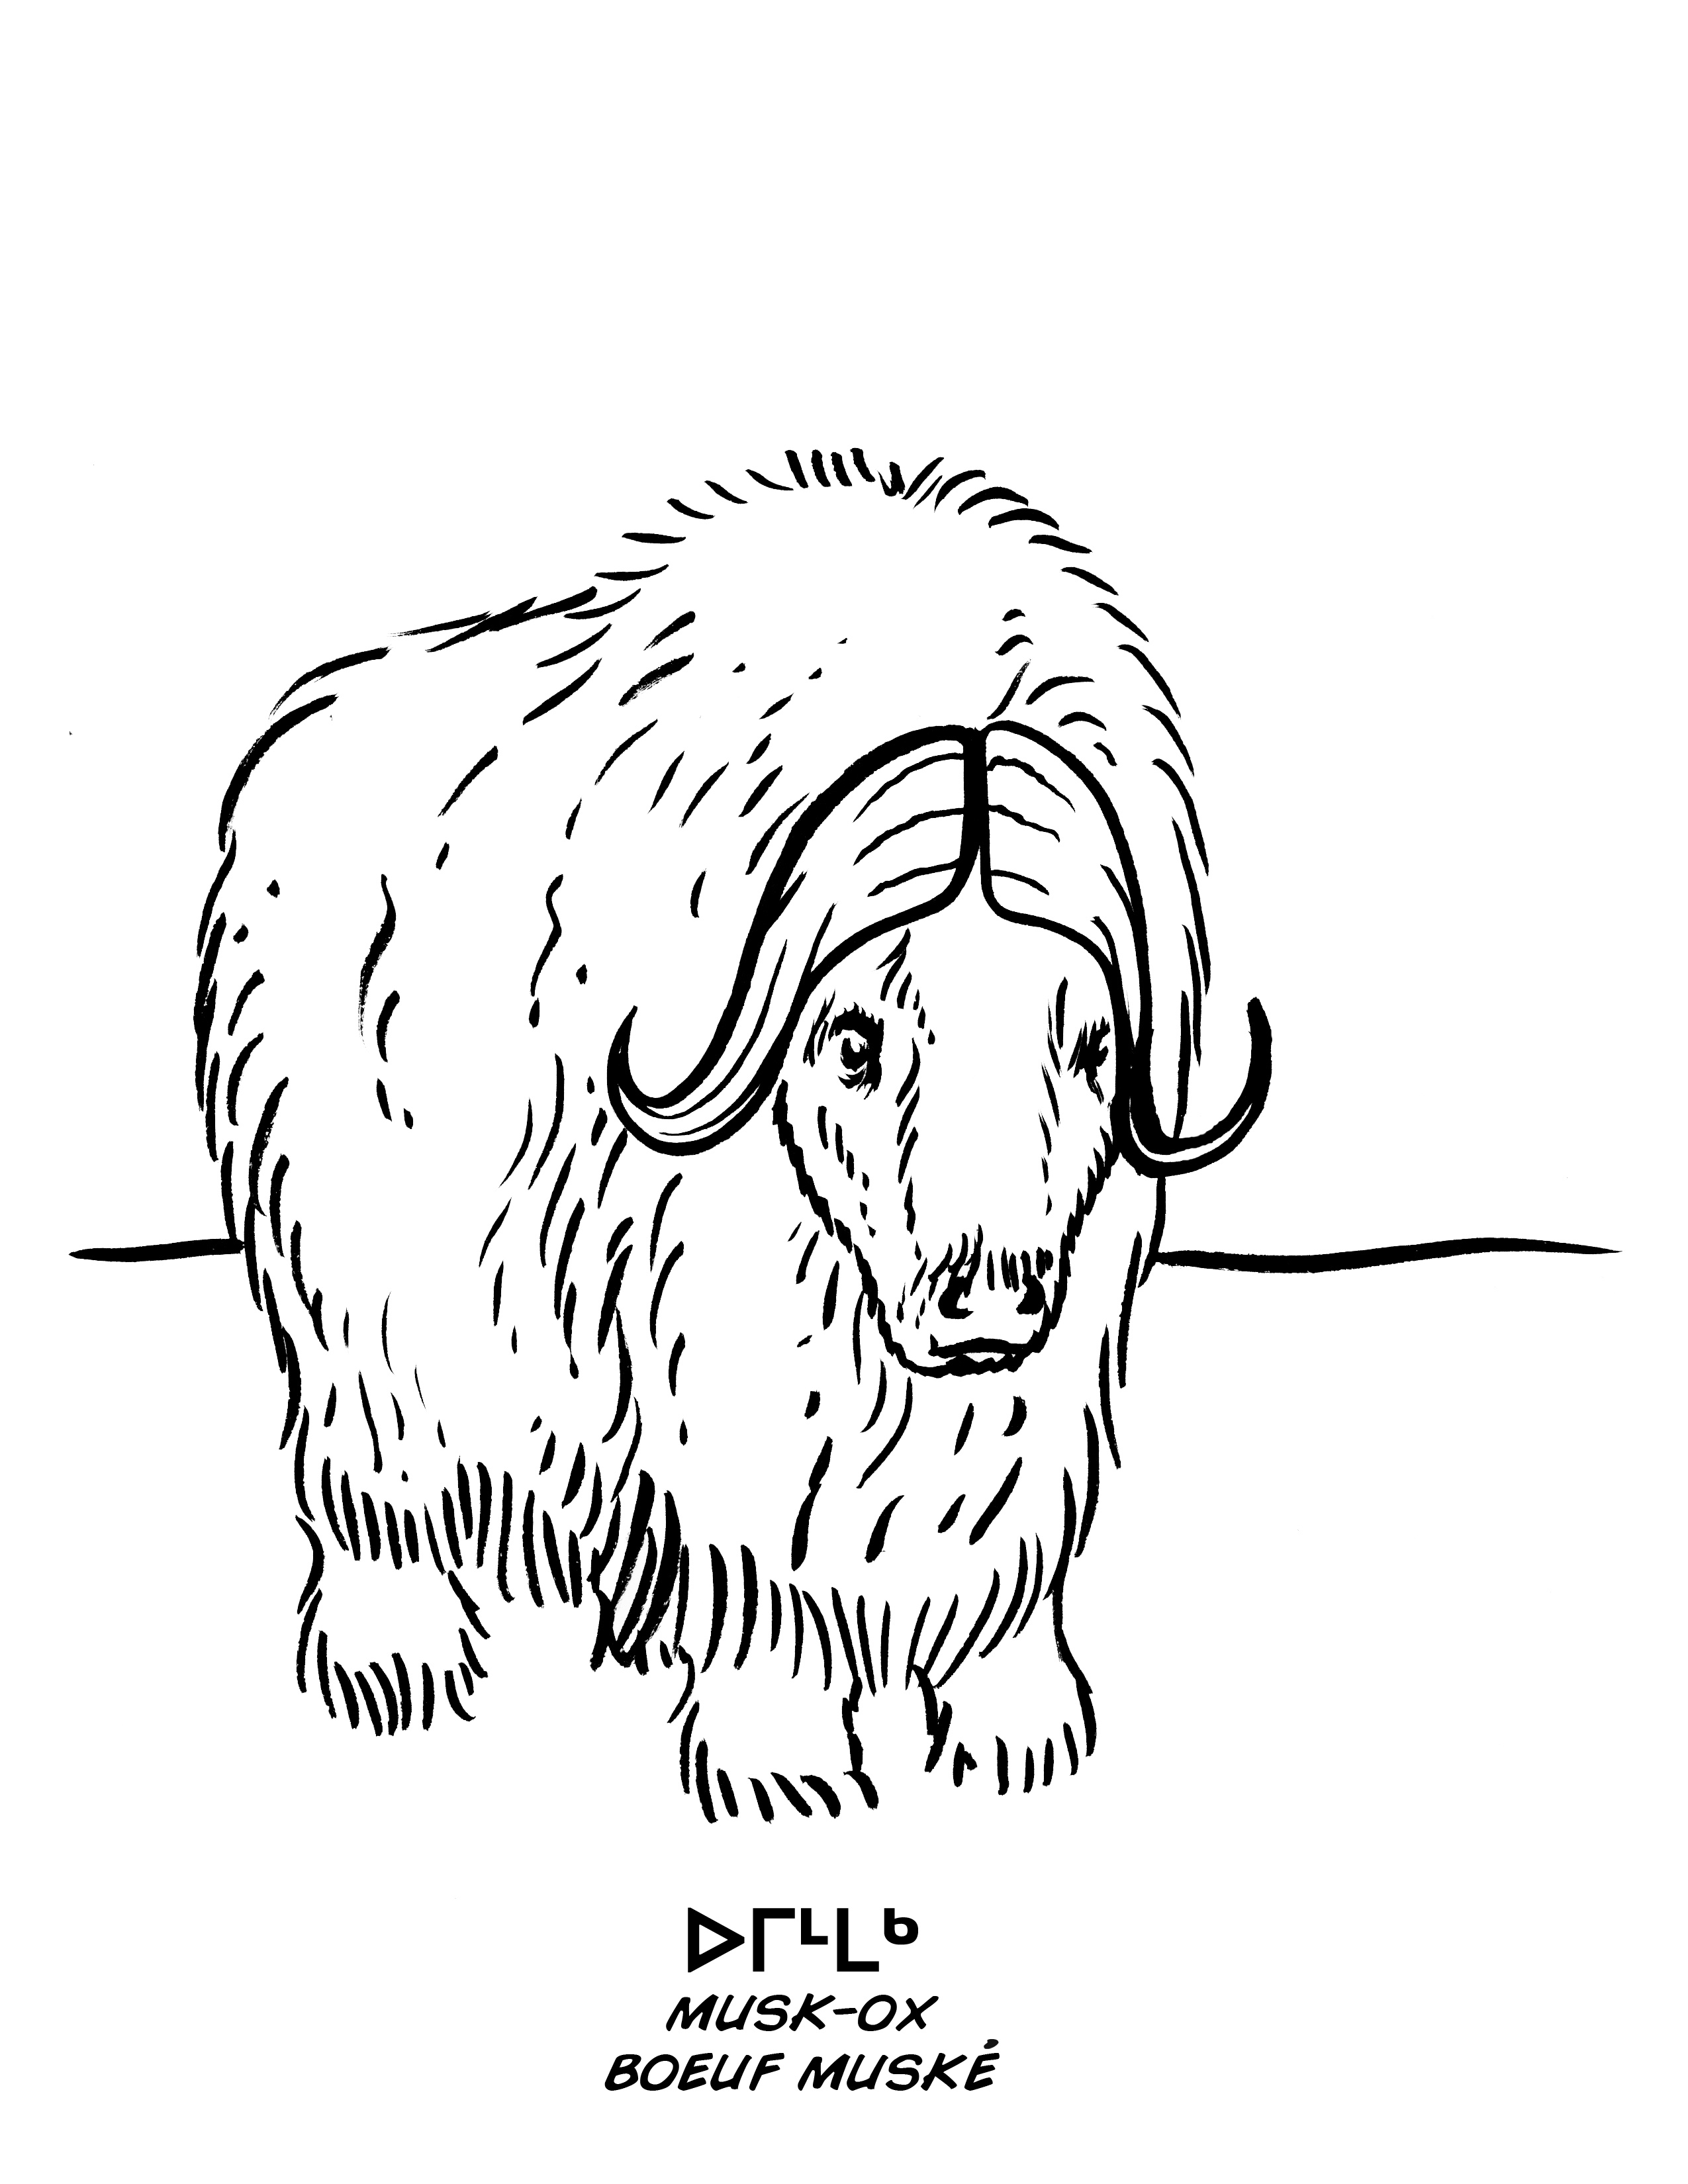 Musk Ox Drawing at GetDrawings.com | Free for personal use Musk Ox ...